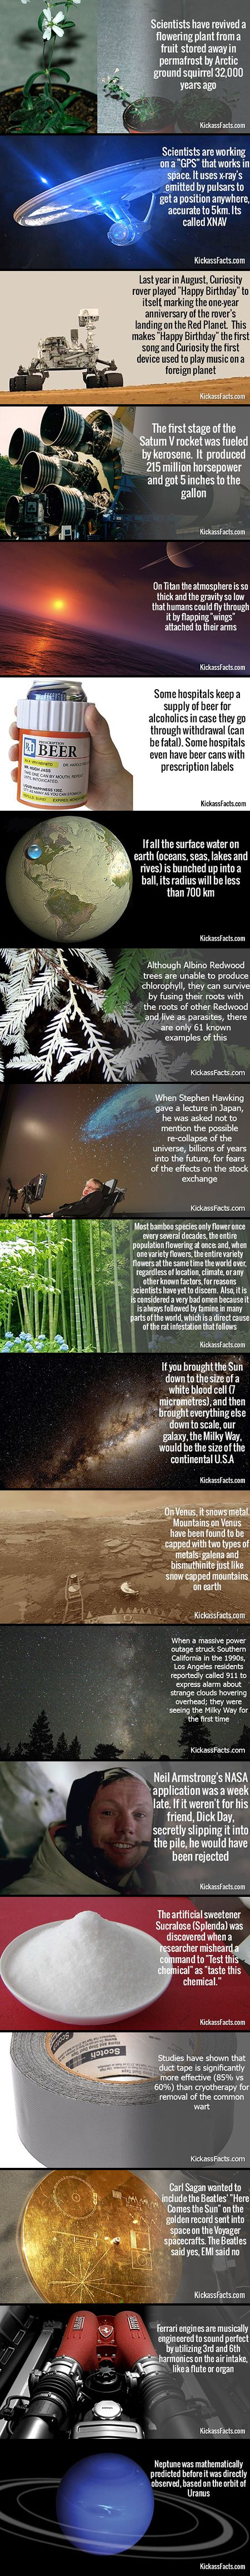 Reviving a frozen flower and 18 other interesting science facts.